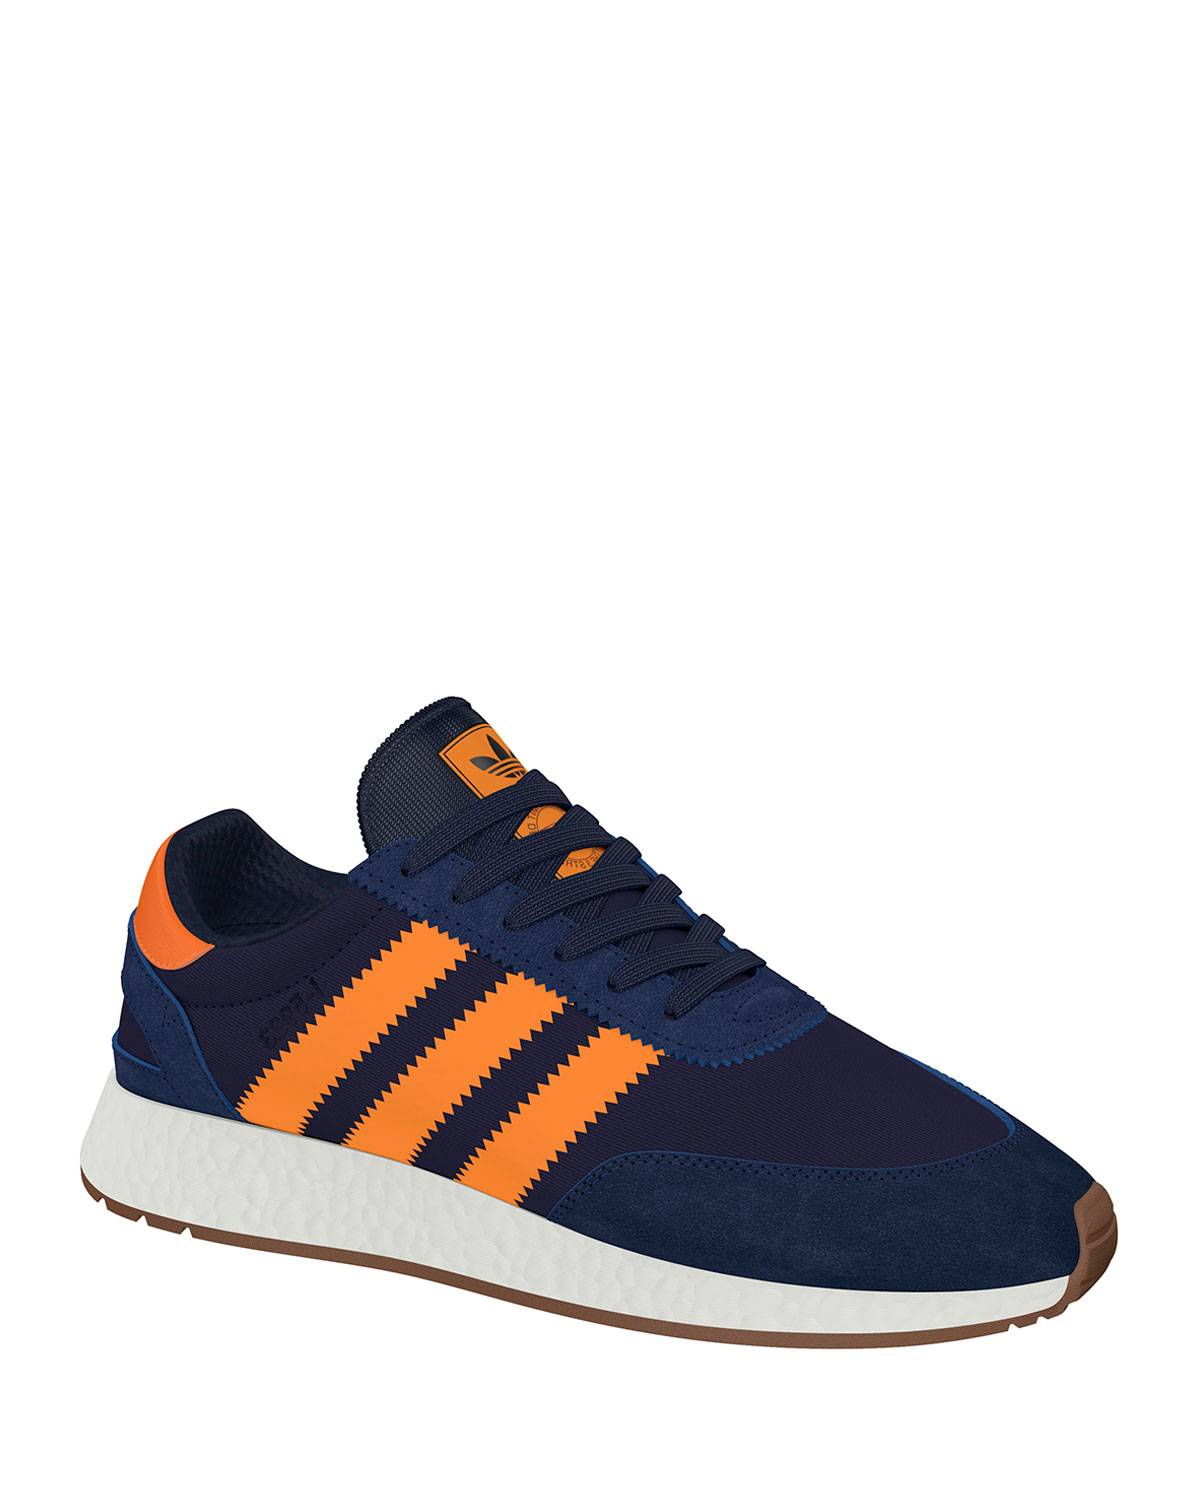 Adidas Men's I-5923 Trainer Sneaker, Blue